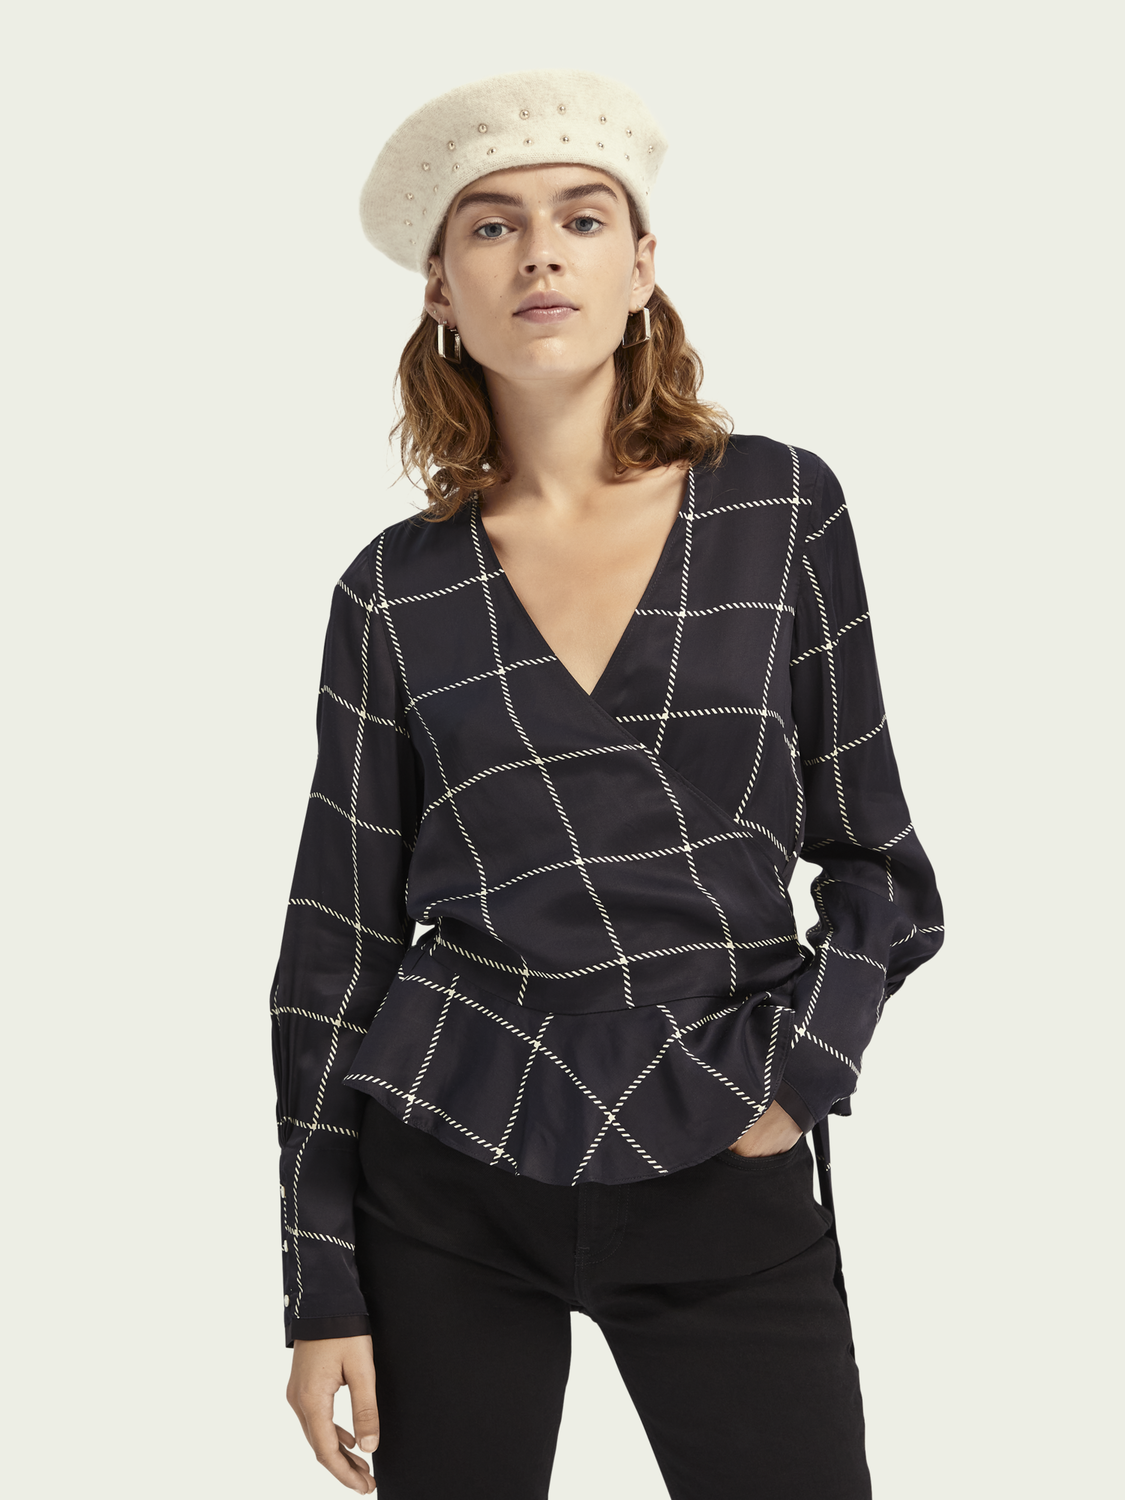 Women LENZING ECOVERO wrap top